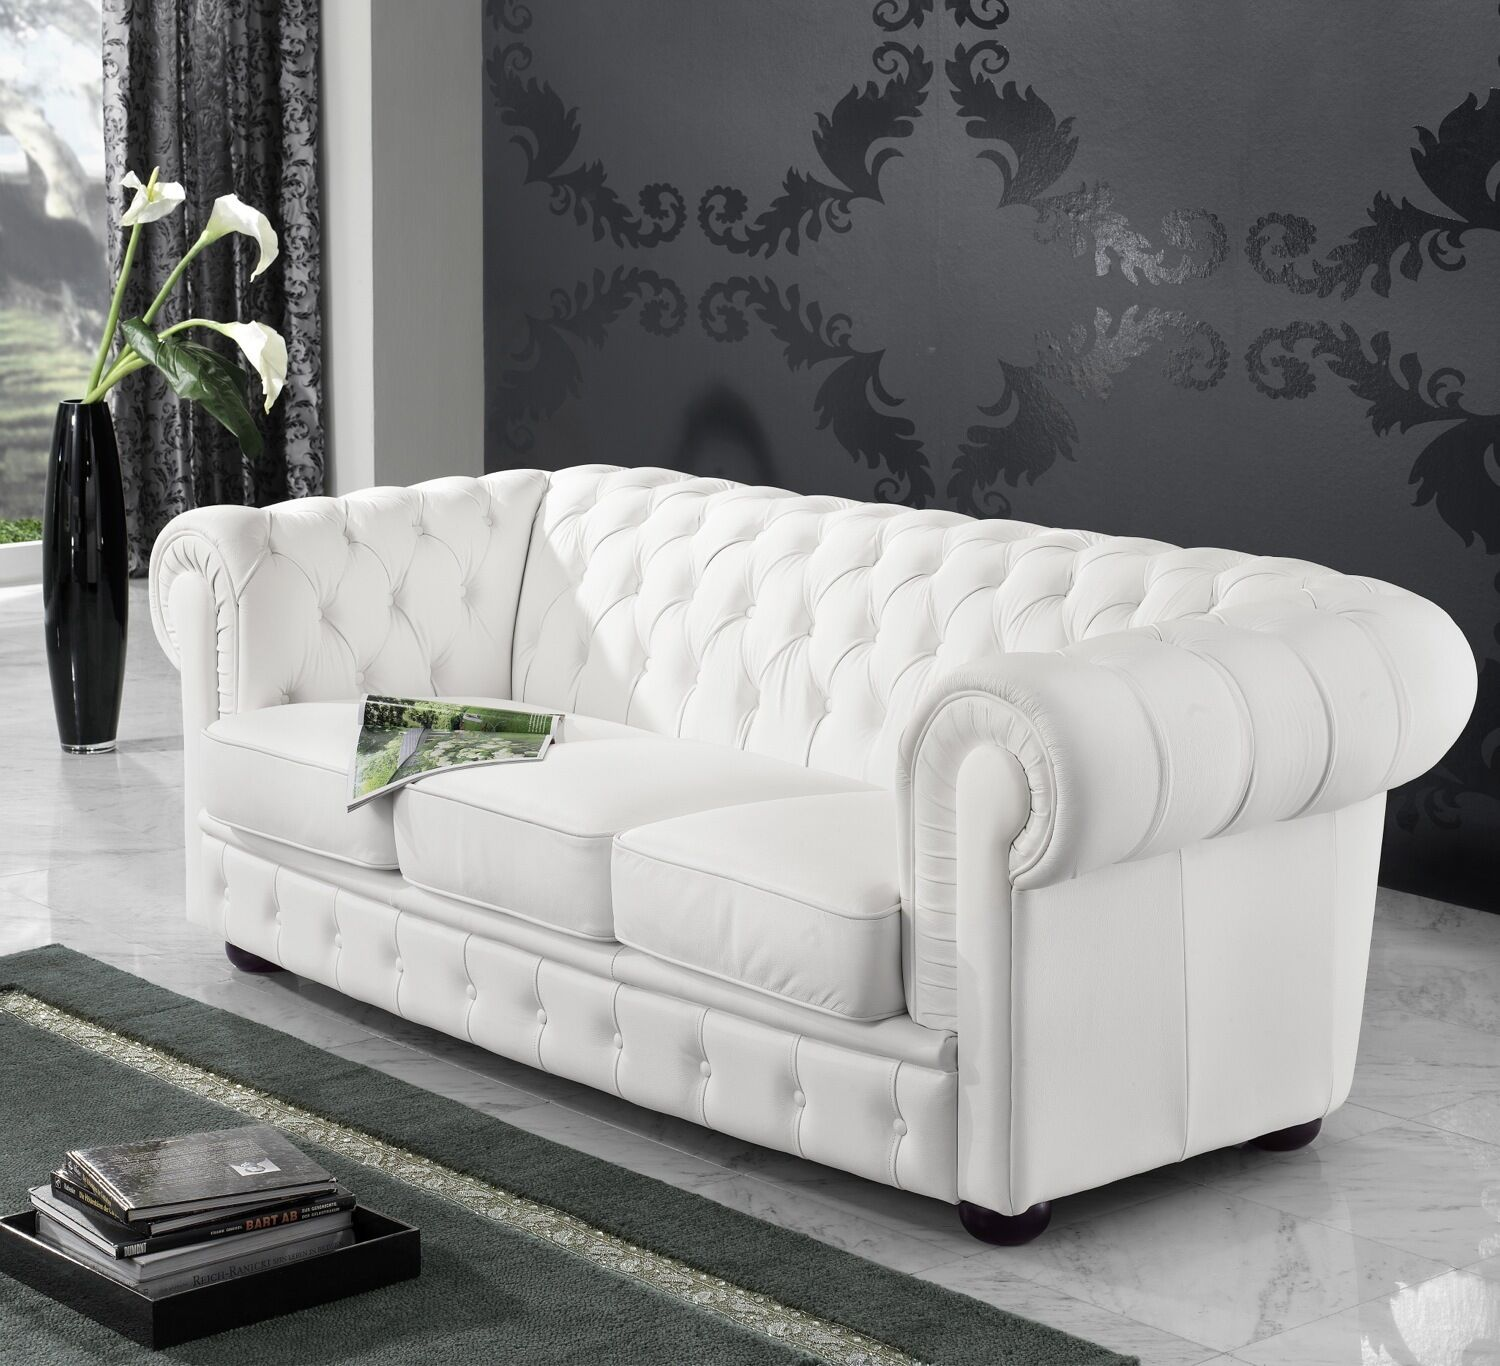 leder sofa 3 sitzer garnitur 3er chesterfield englischer landhaus stil neu eur. Black Bedroom Furniture Sets. Home Design Ideas